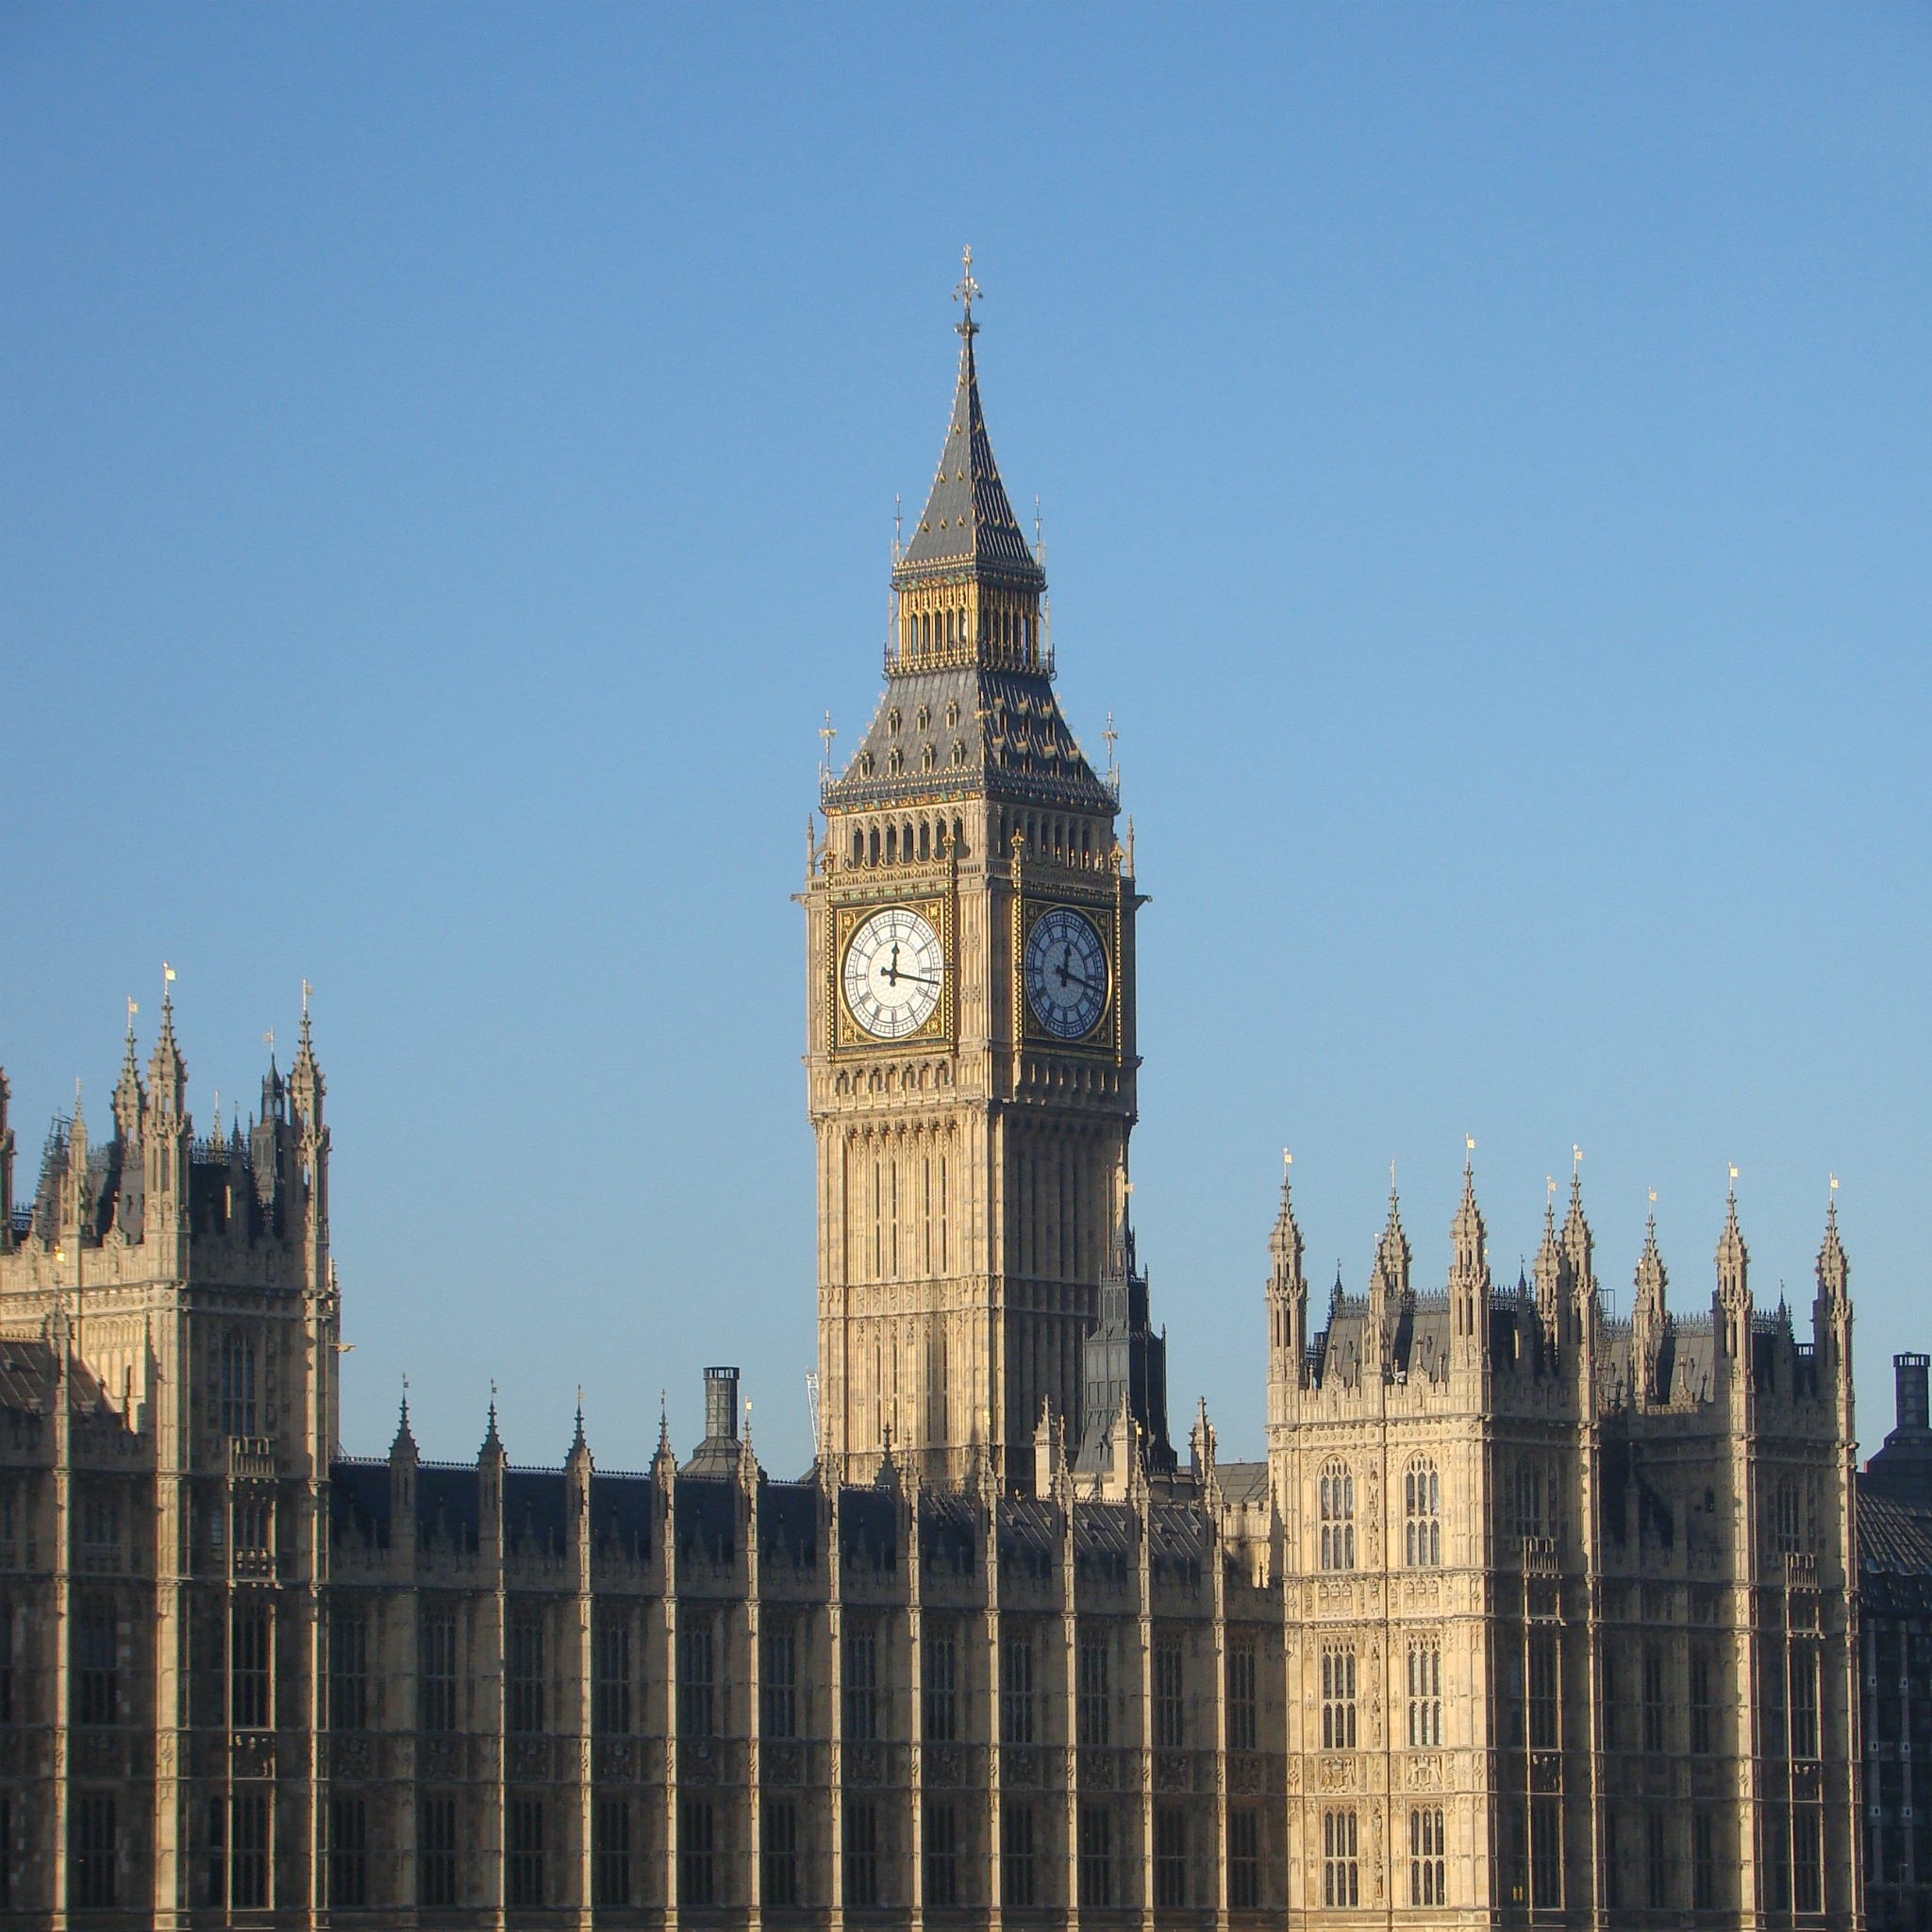 Stock images — 2048 × 2048 — London — 13 — Elizabeth Tower (Clock Tower), Palace of Westminster, London